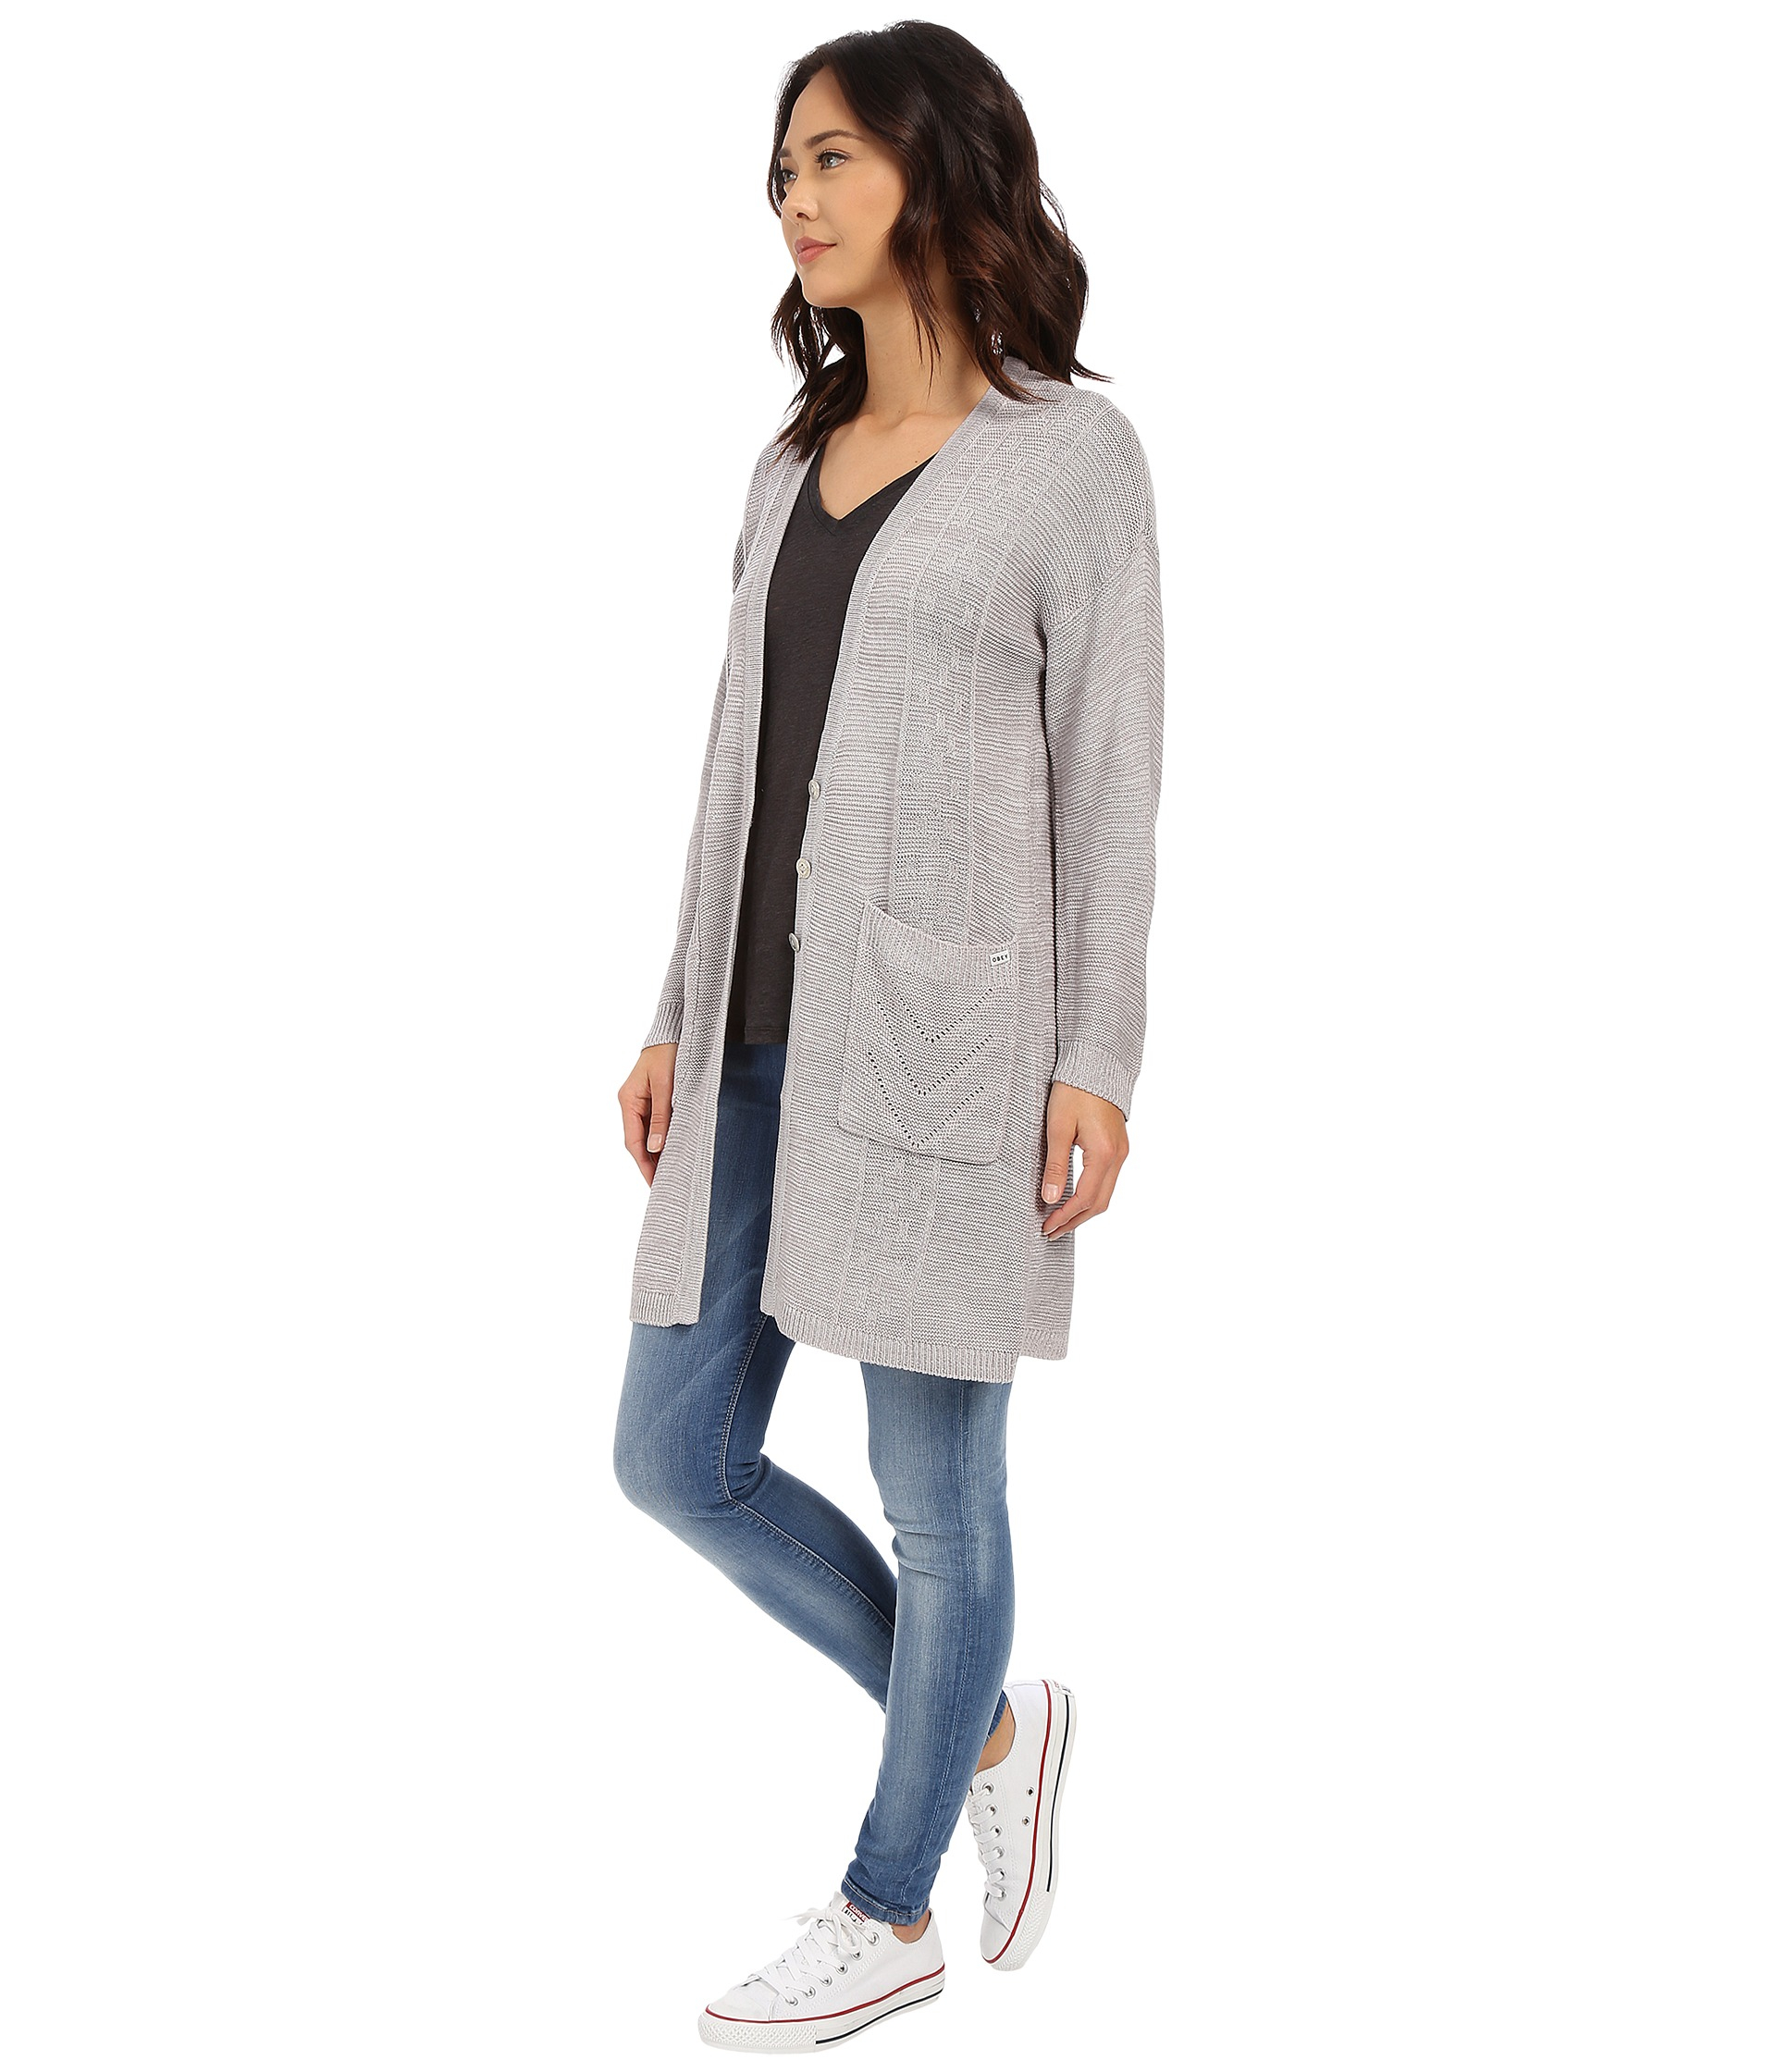 Obey Duster Cardigan in Gray | Lyst